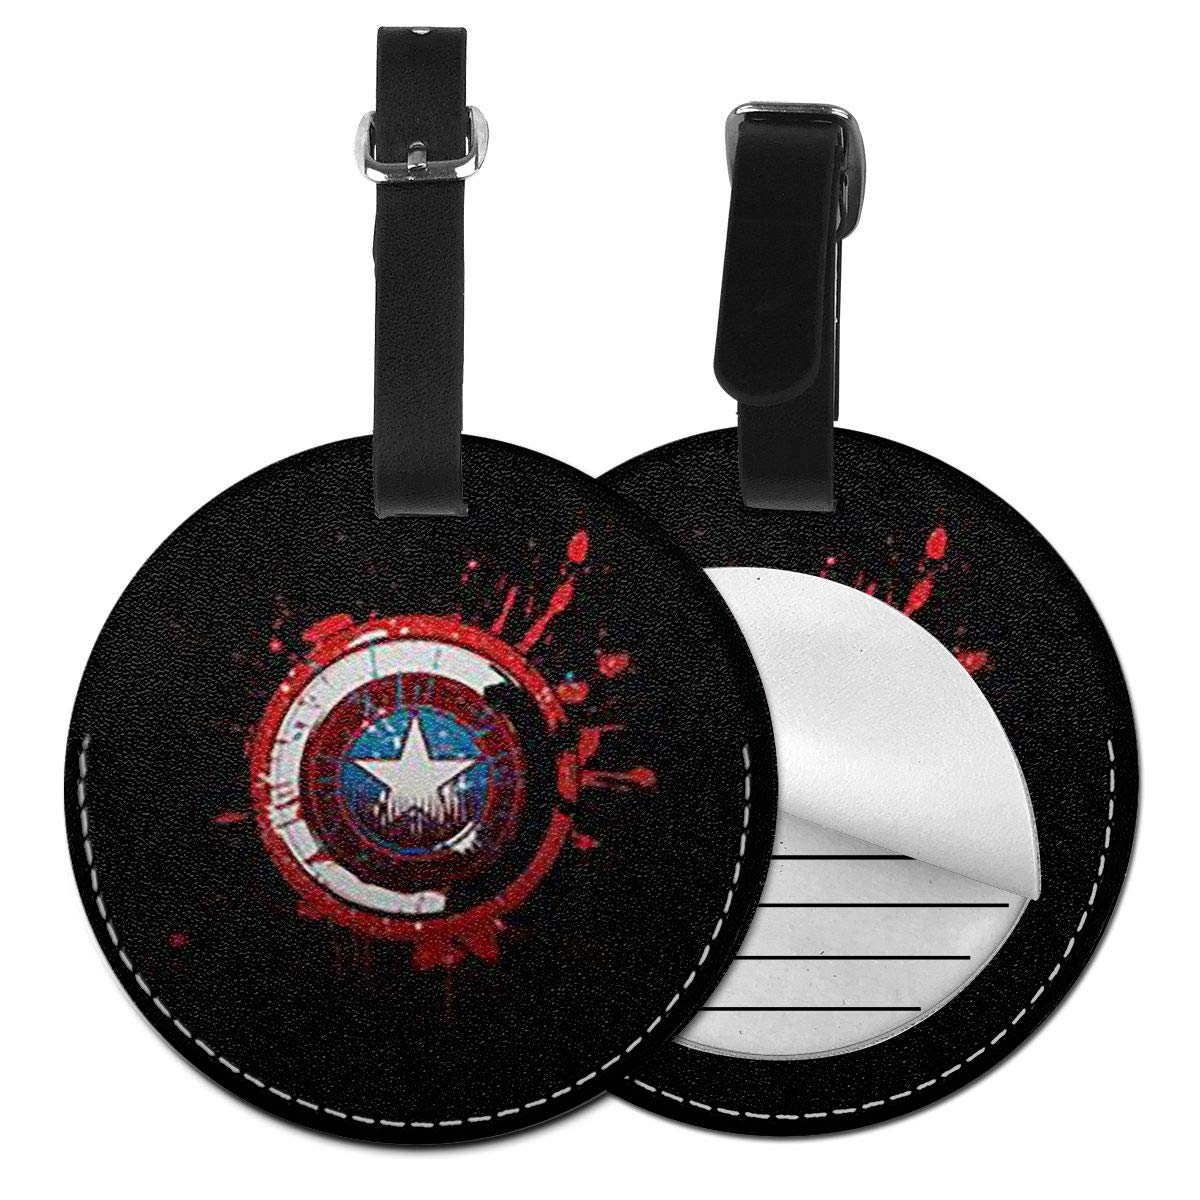 WEIBING Round Luggage TagCaptain America Luggage Tags Suitcase Labels Bag Travel Accessories